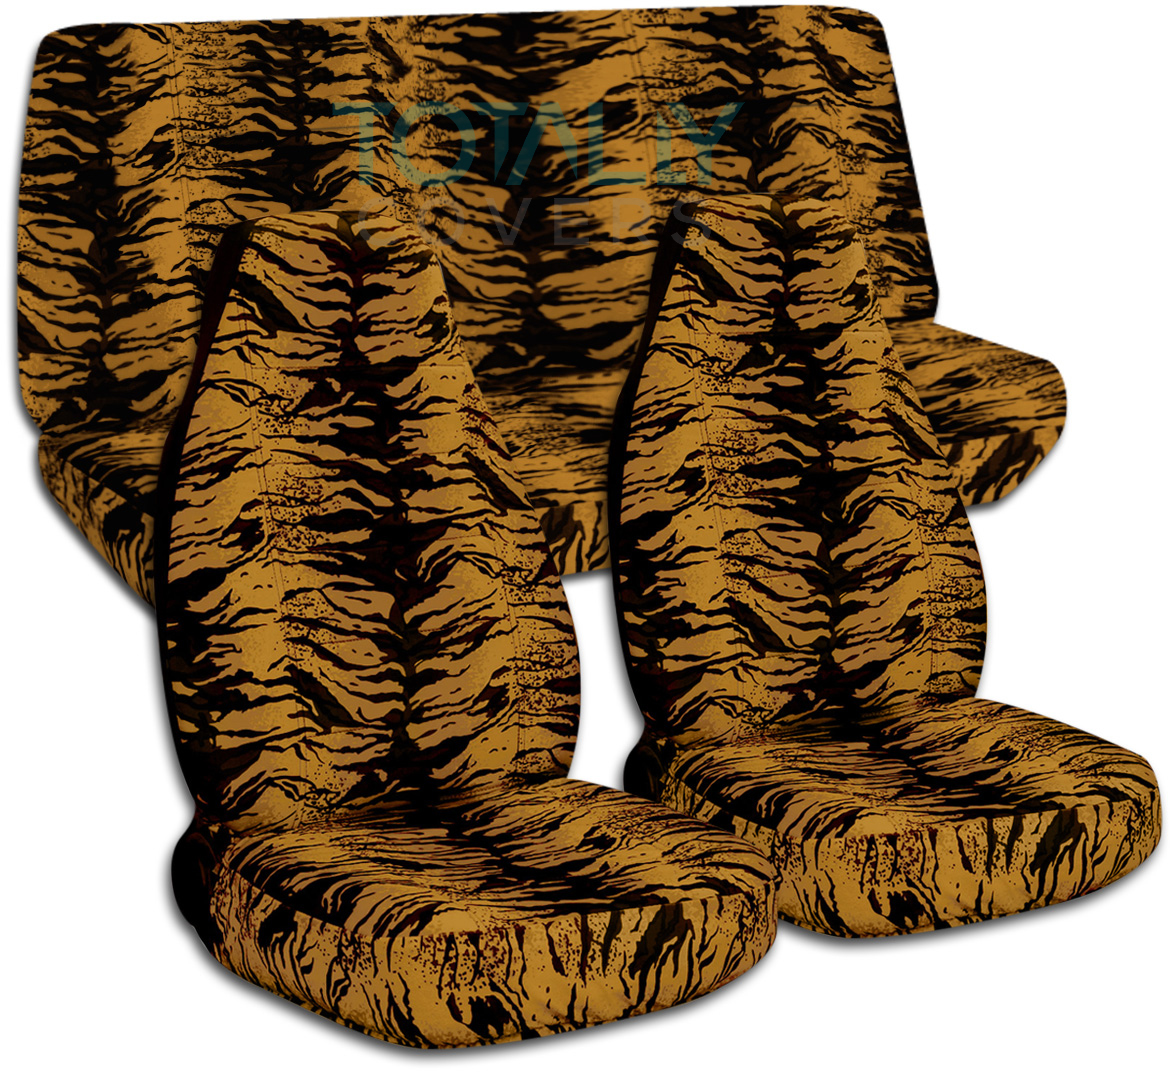 Jeep Wrangler Yj Tj Jk 1987 2017 Animal Print Seat Covers